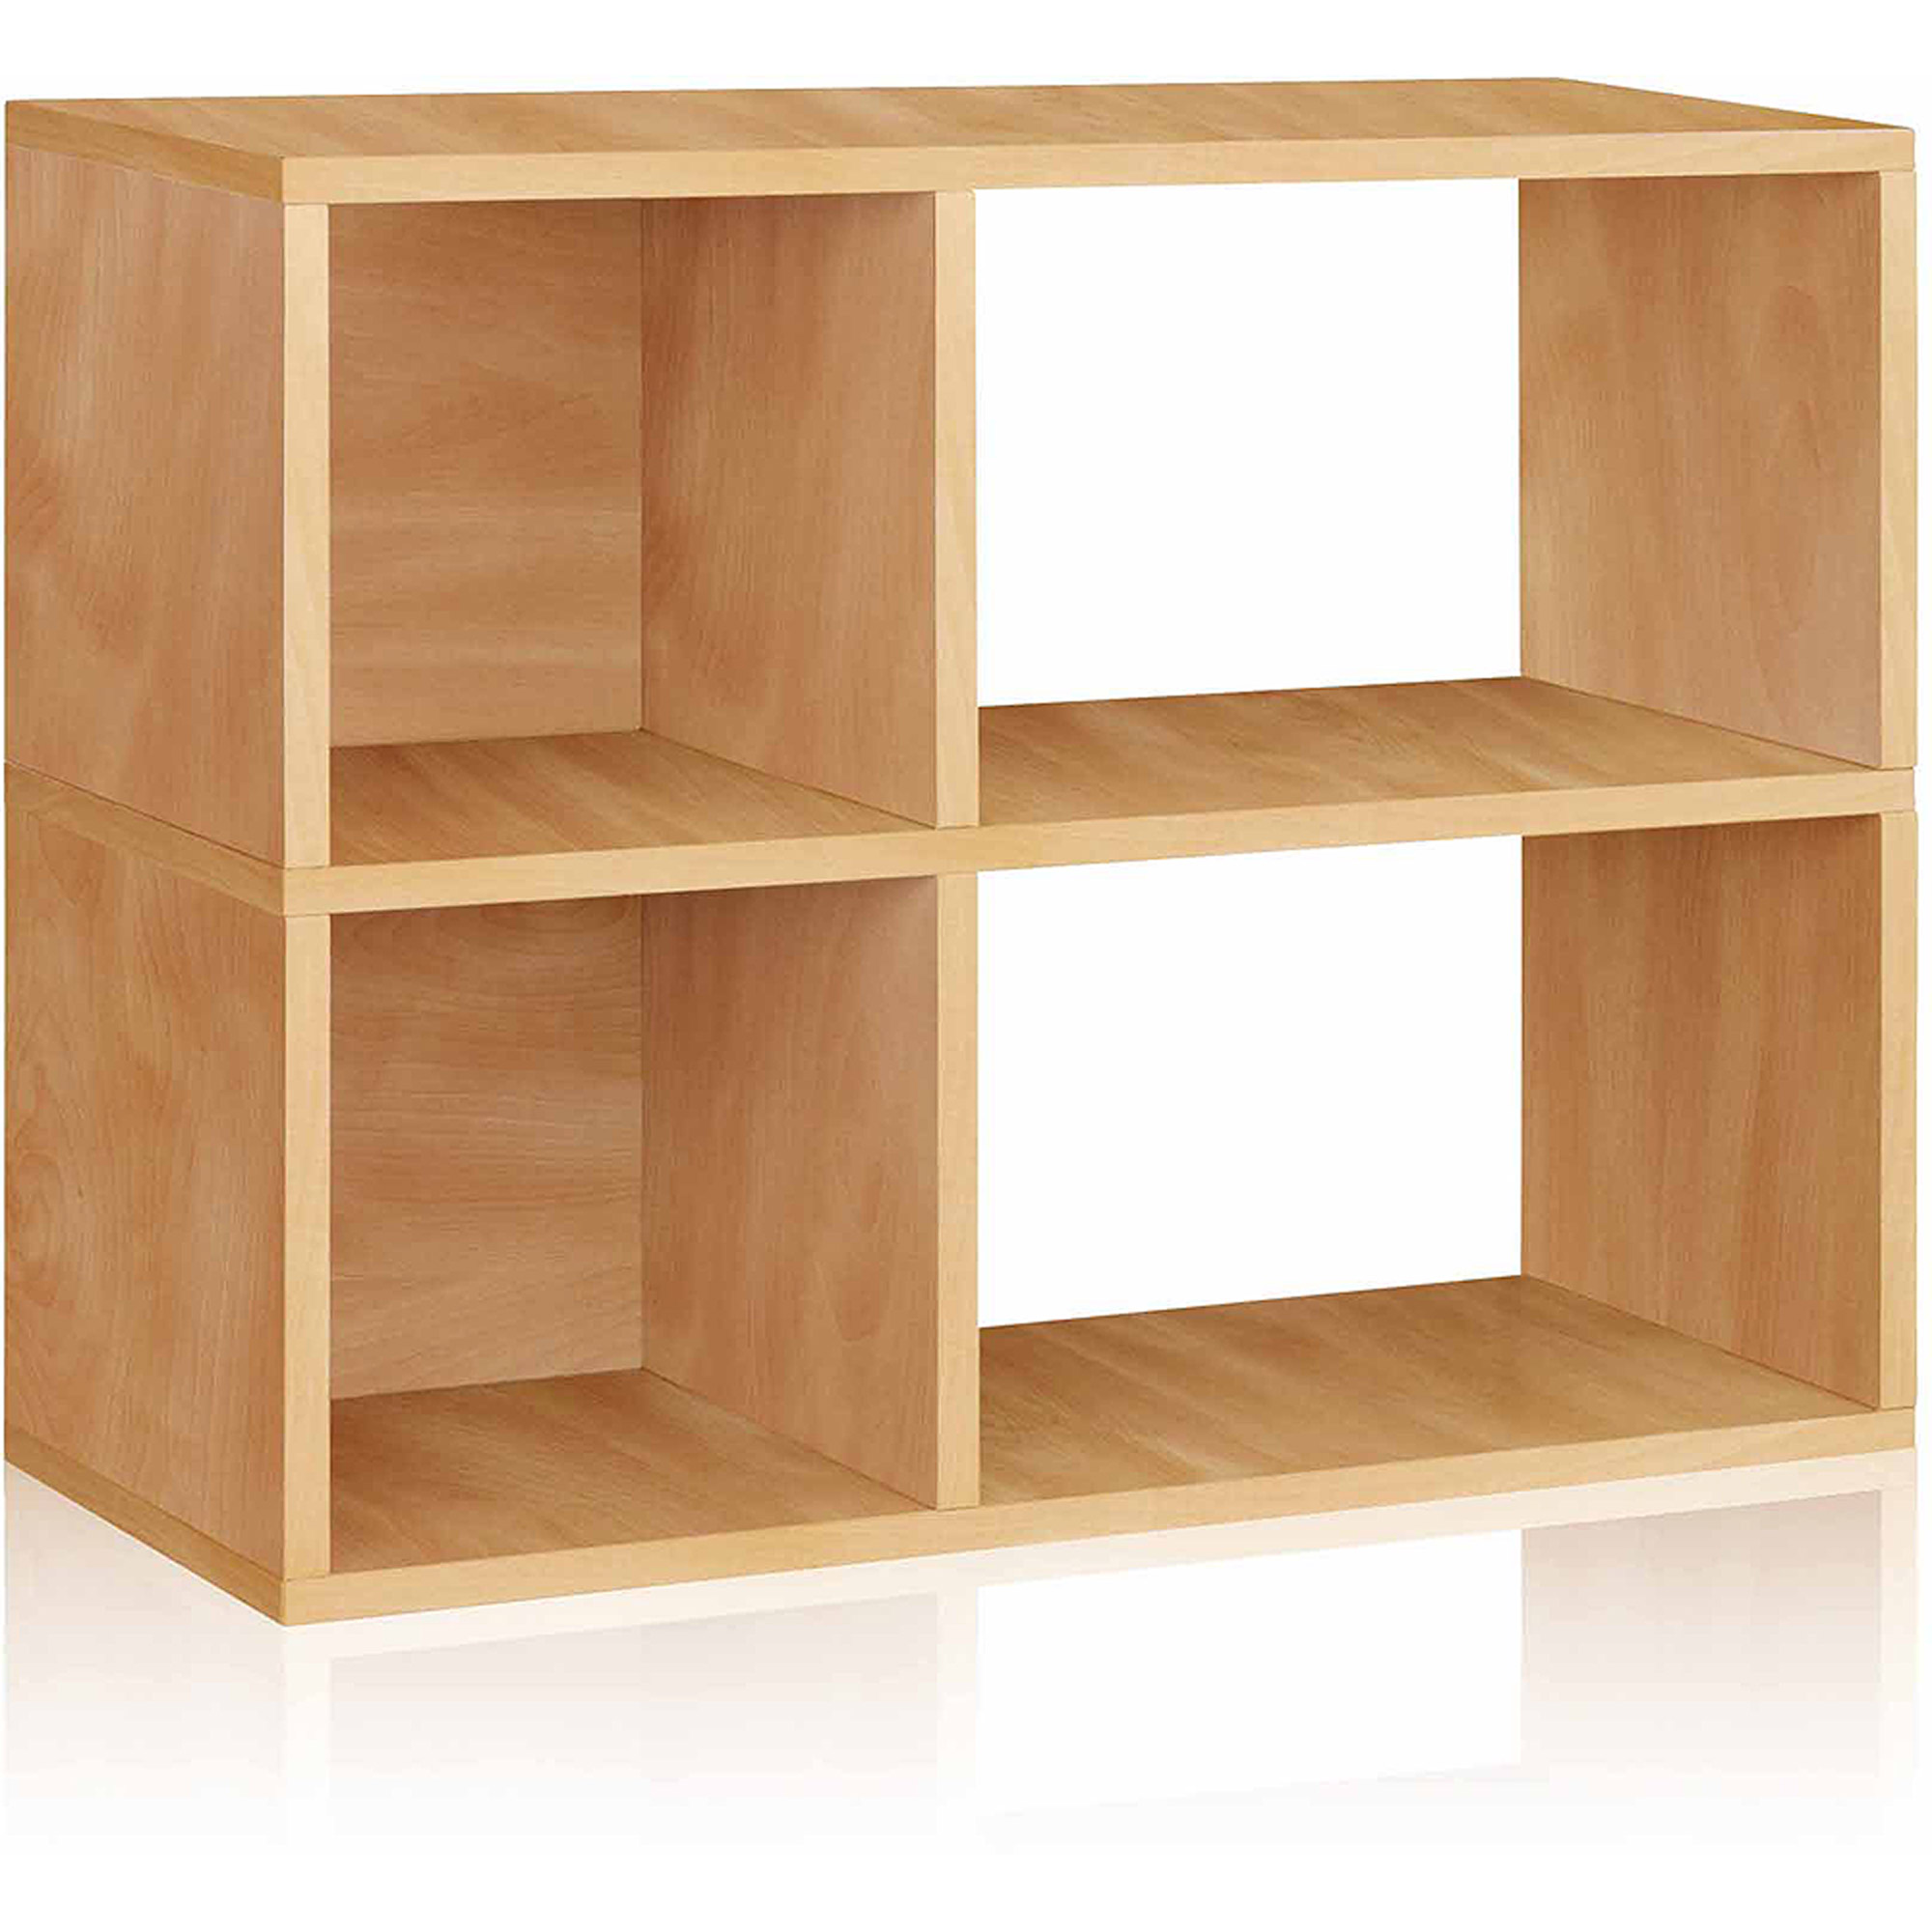 Way Basics Eco 2-Shelf Chelsea Bookcase and Cubby Storage, Natural